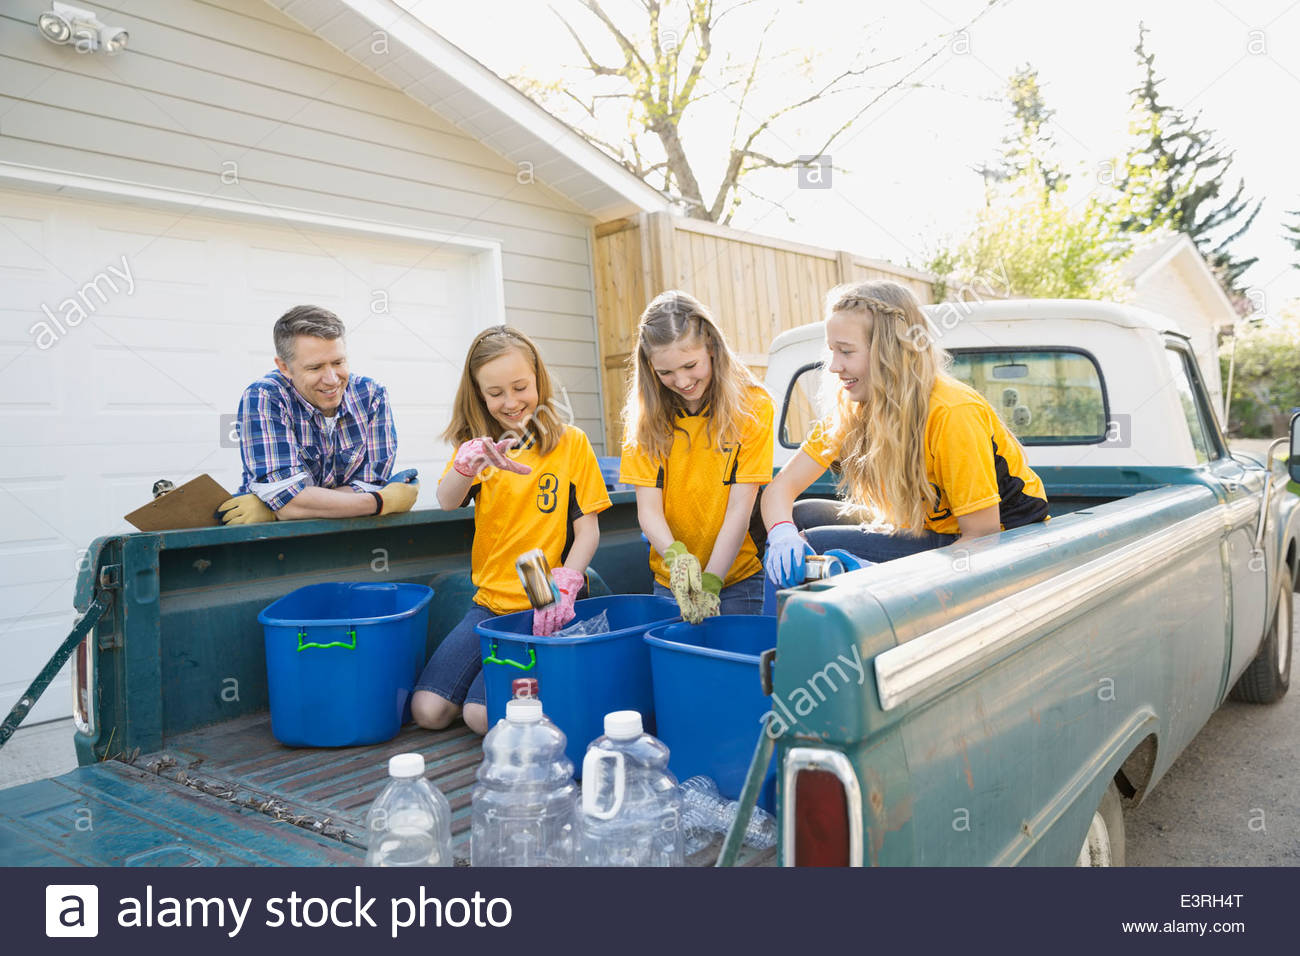 Girls in uniforms sorting recycling in truck bed - Stock Image